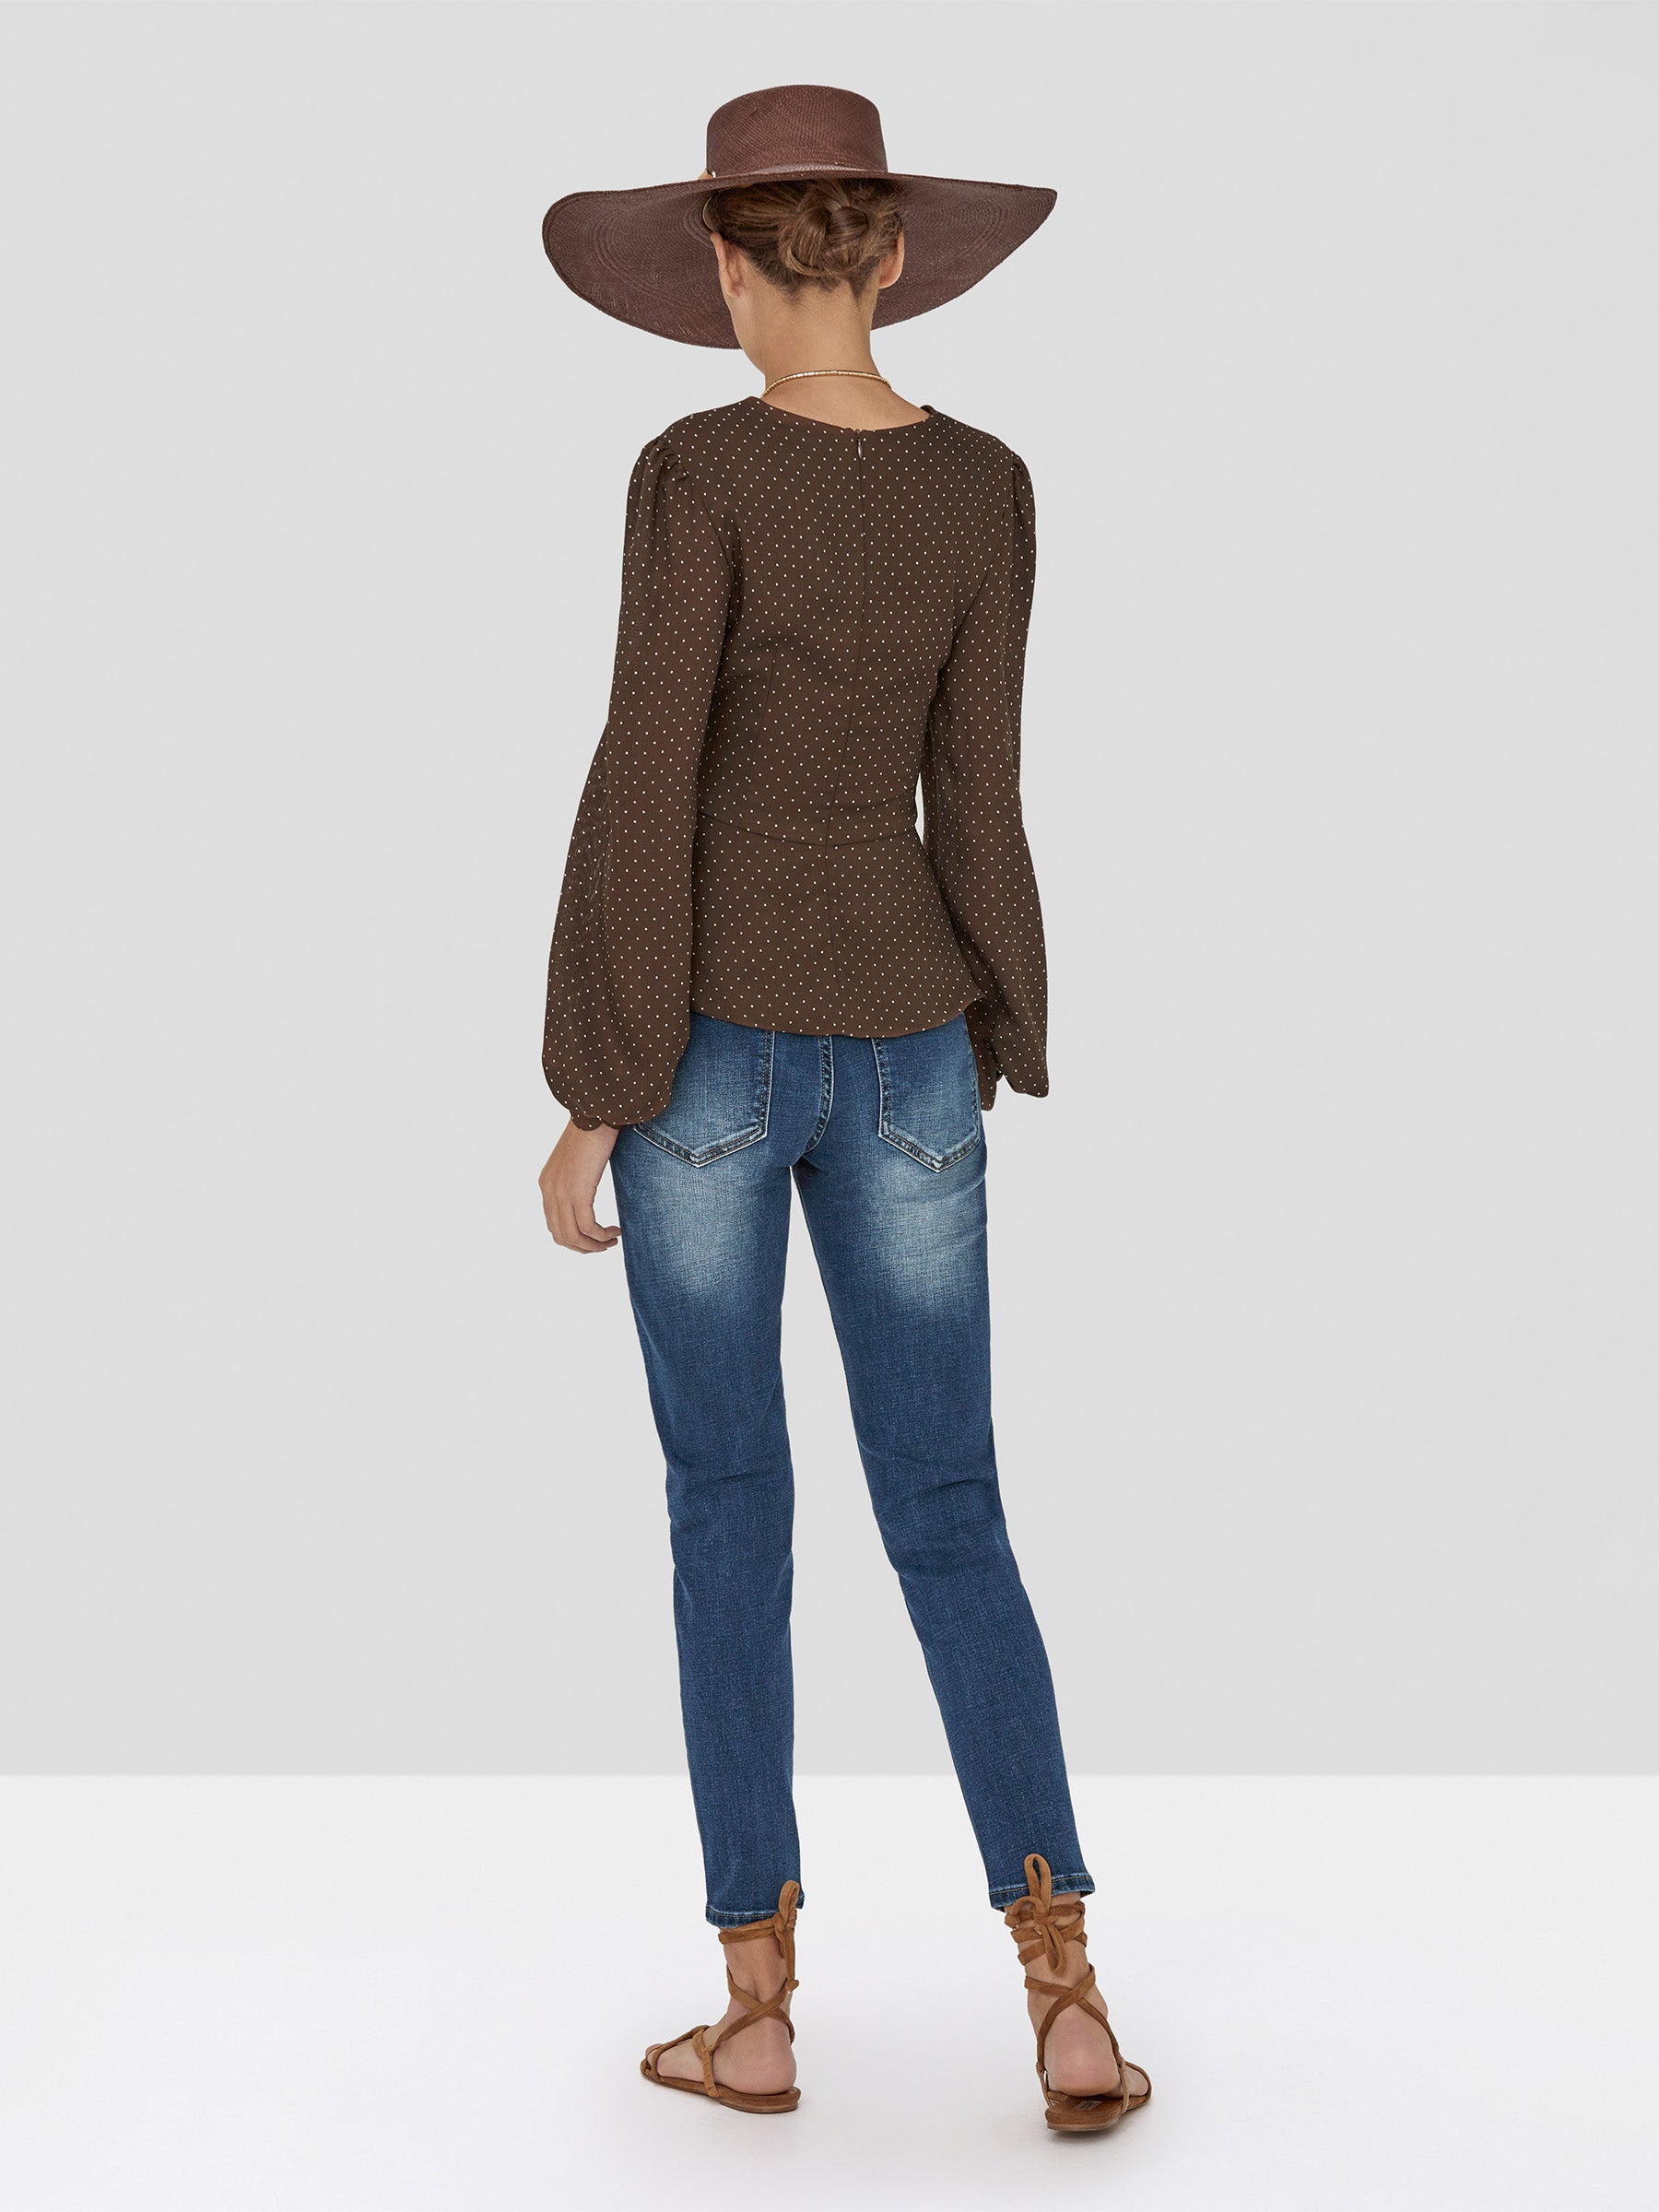 Alexis Avani Top in Mocha Dot Linen and Holston Denim Pant in Indigo Denim from Spring Summer 2020  - Rear View